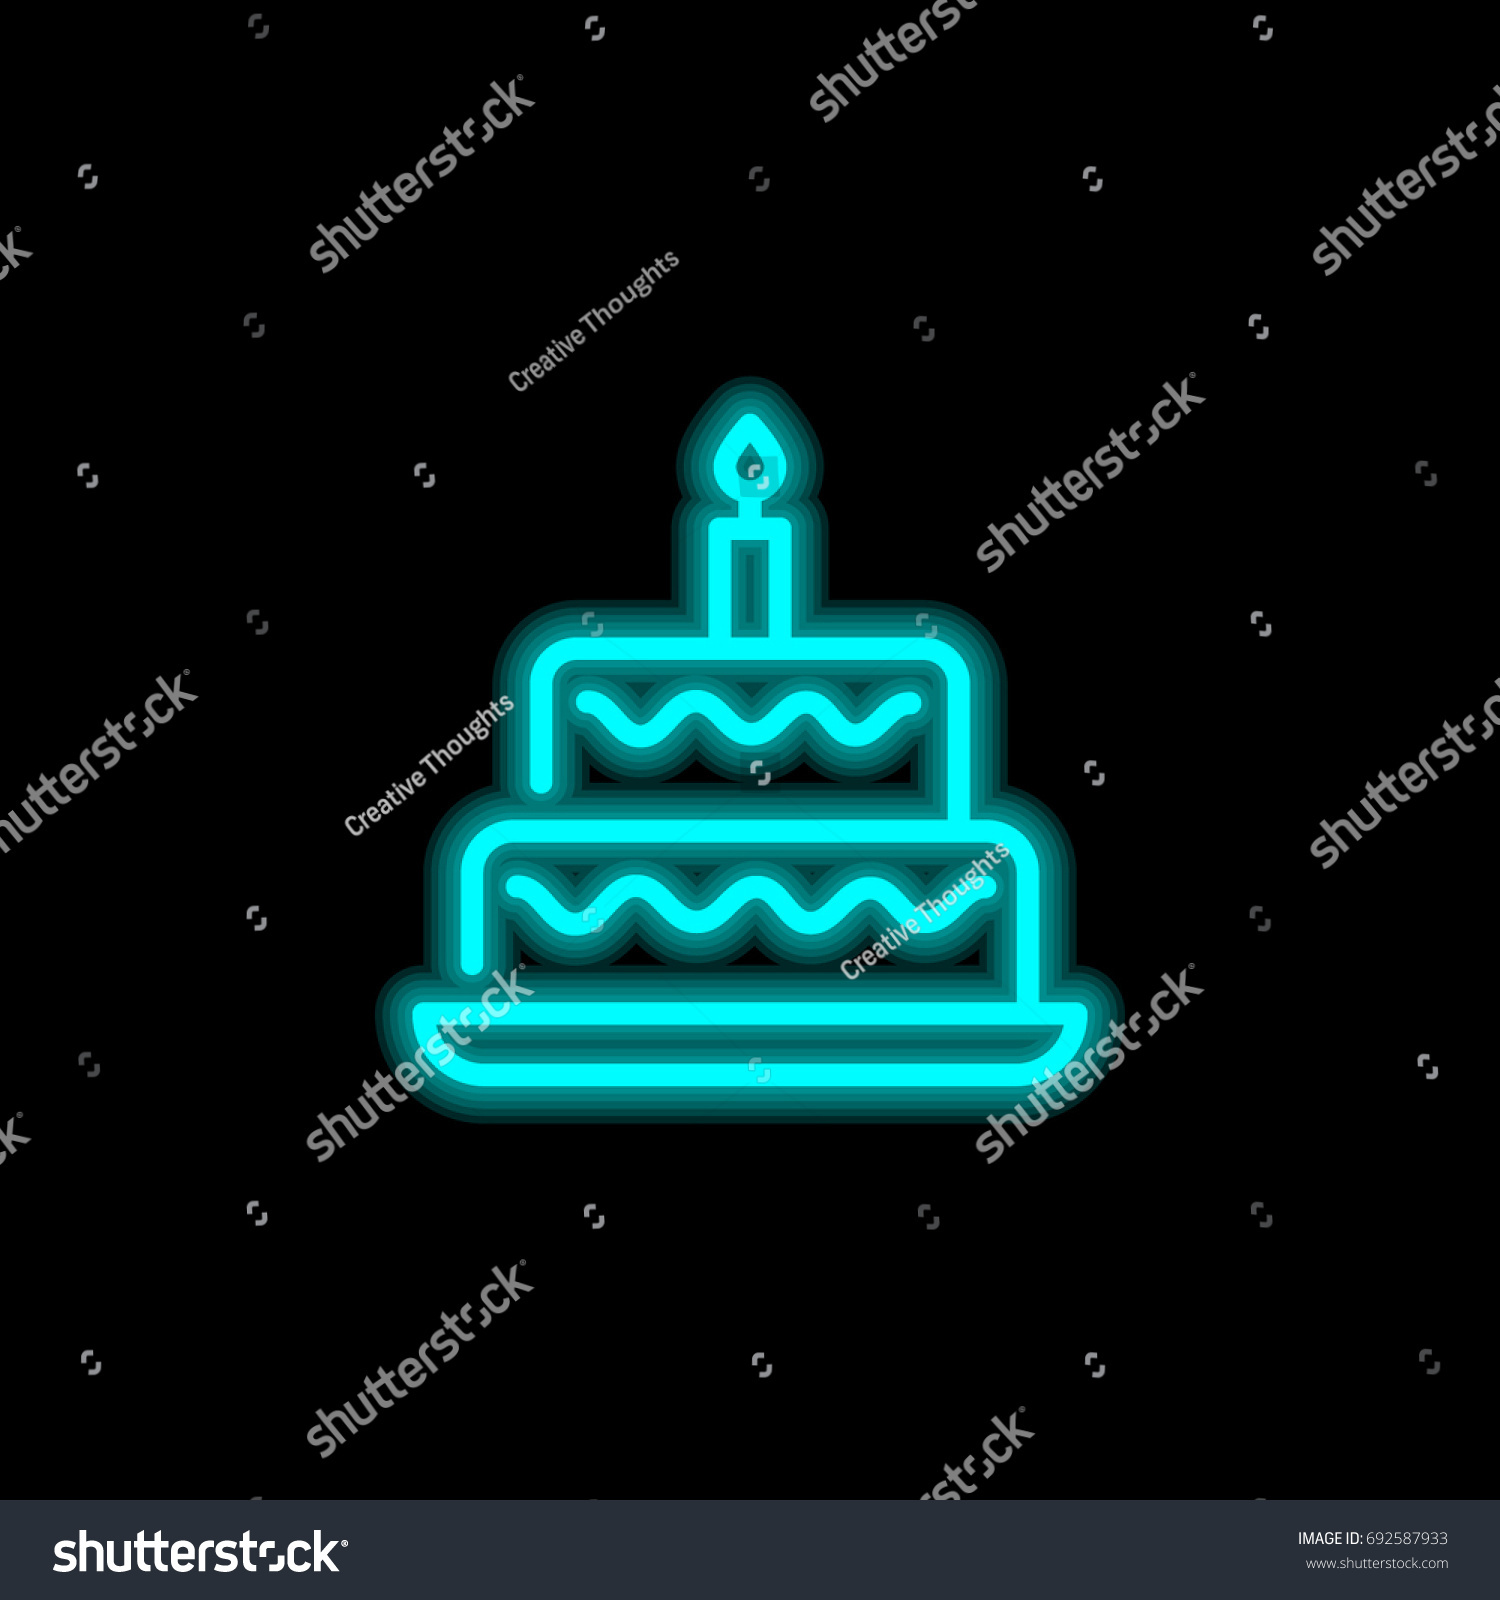 Birthday Cake Blue Glowing Neon Ui Stock Vector 692587933 Shutterstock